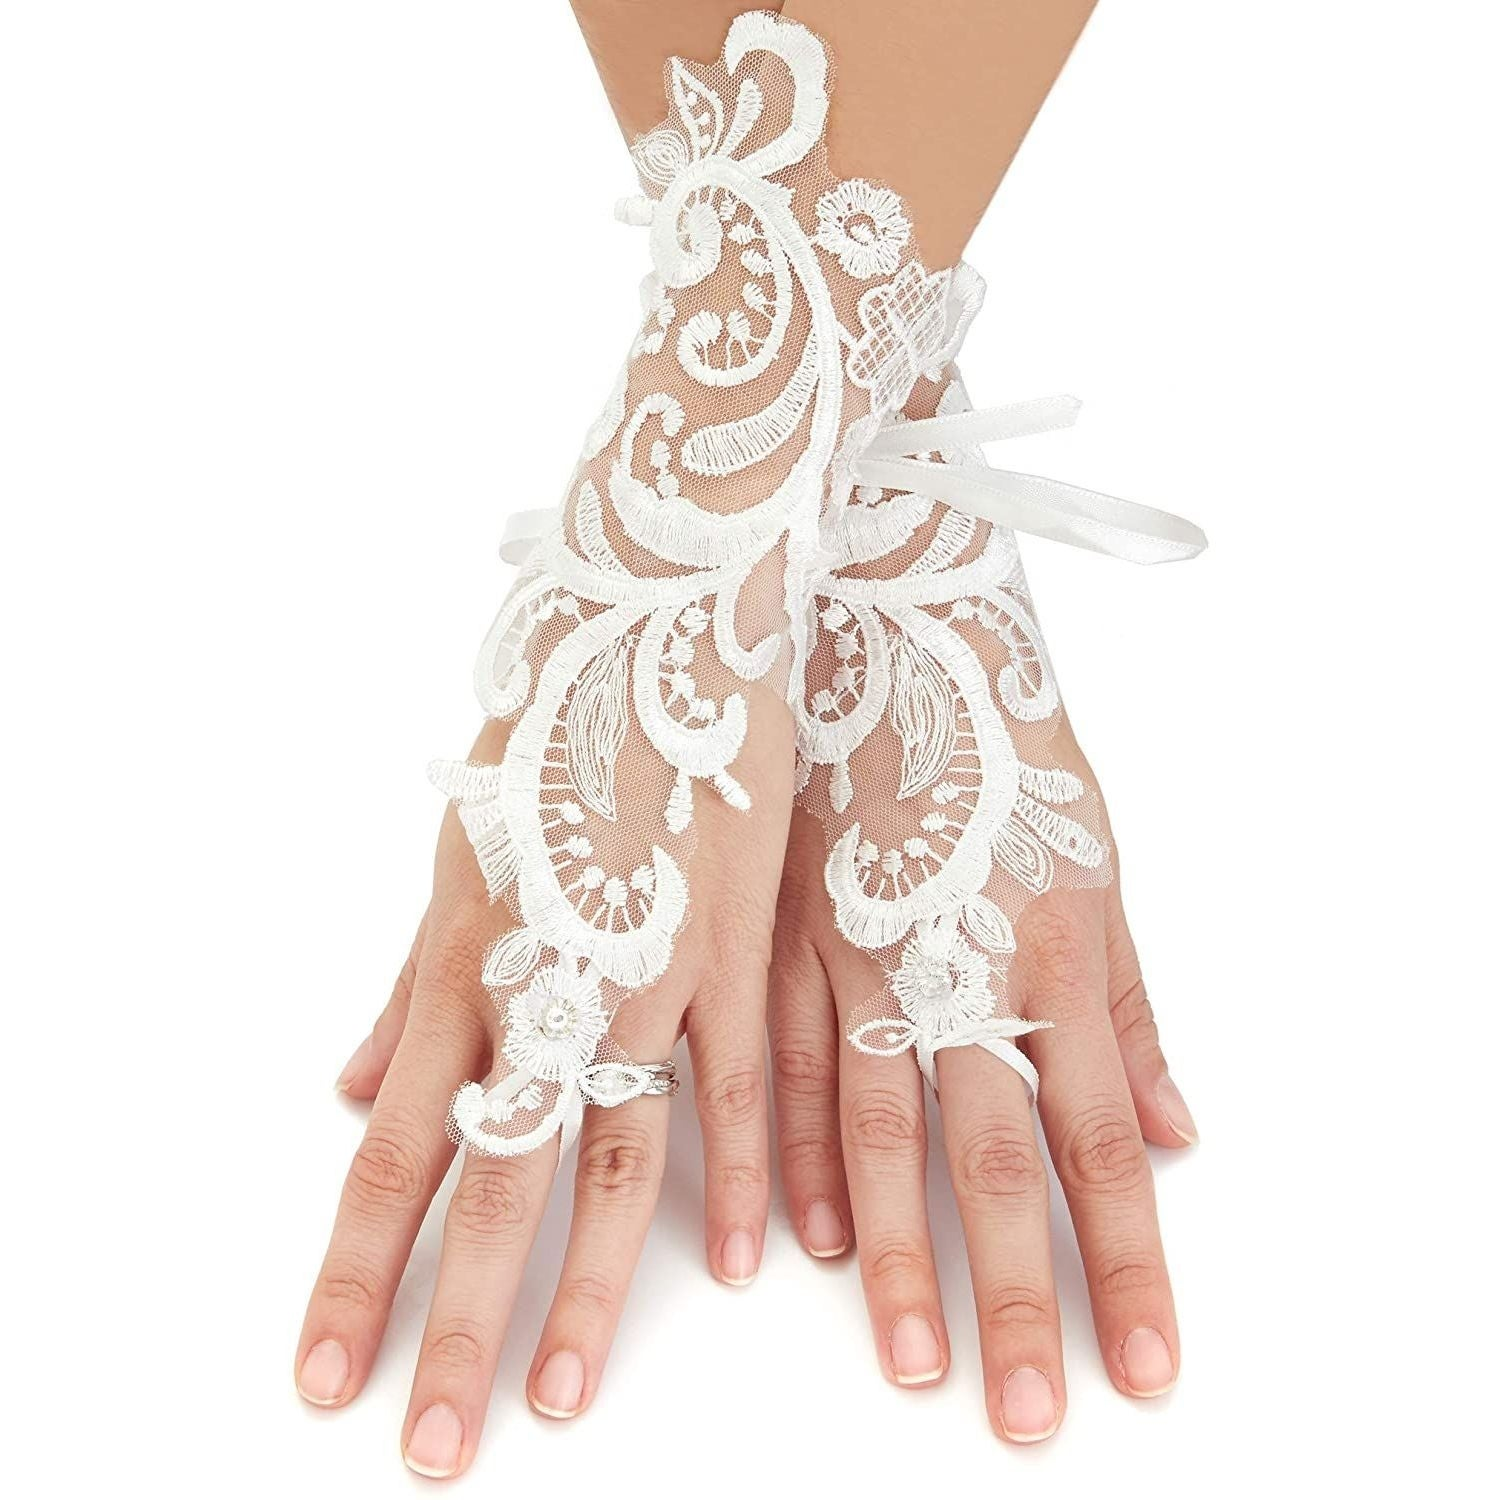 Womens Lace Fingerless Short Gloves Bridal Rhinestone Gloves for Wedding Party